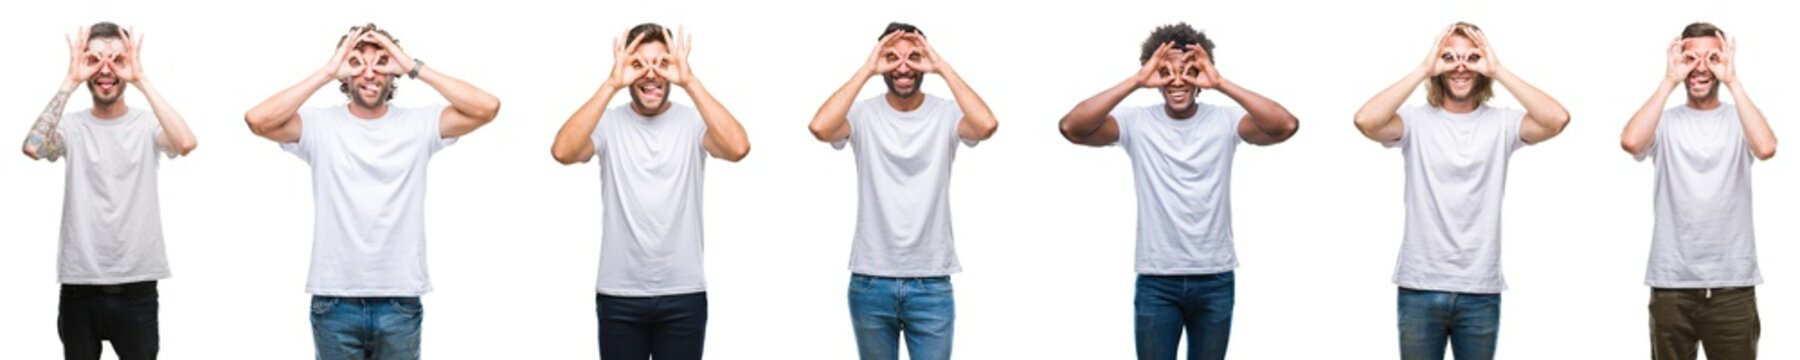 Collage of young caucasian, hispanic, afro men wearing white t-shirt over white isolated background doing ok gesture like binoculars sticking tongue out, eyes looking through fingers